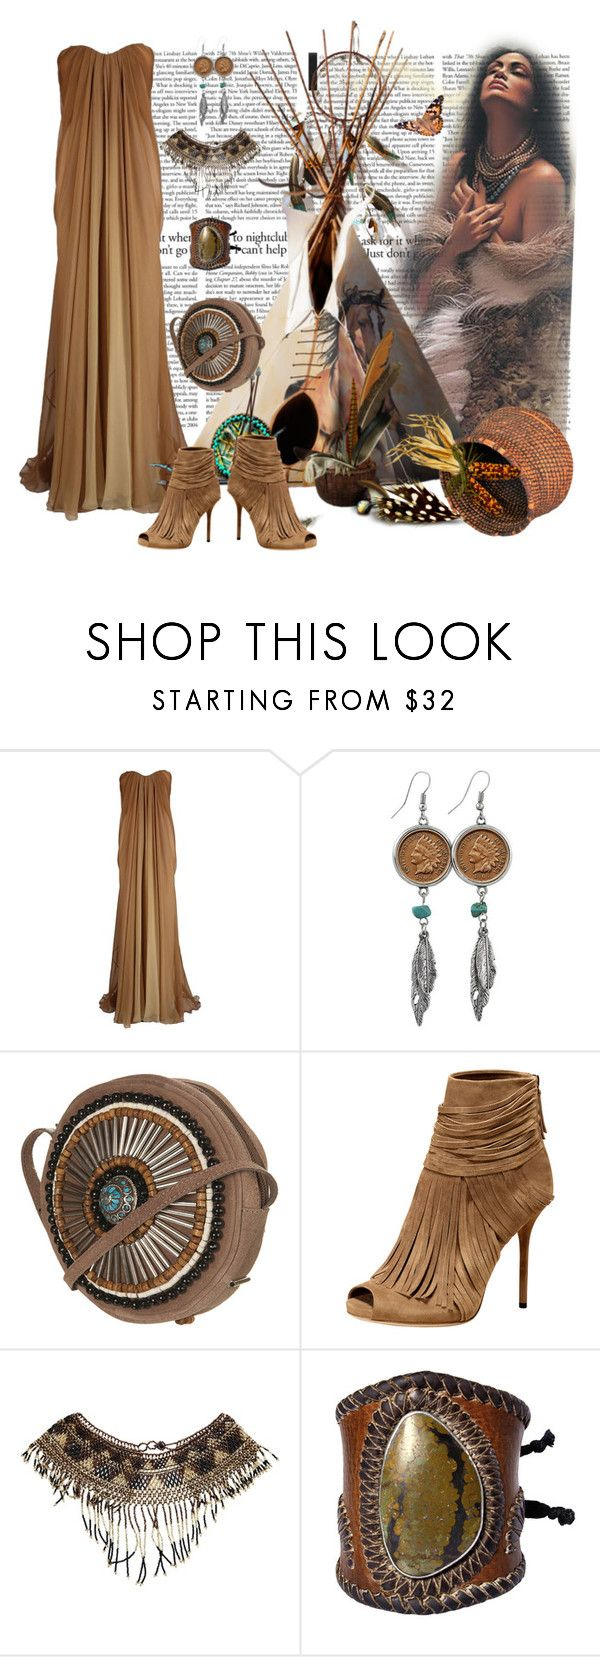 """""""INDIAN PRINCESS"""" by sherrysrosecottage-1 ❤ liked on Polyvore featuring Alexander McQueen, American Coin Treasures, Gucci, Jens Pirate Booty and Été Swim"""